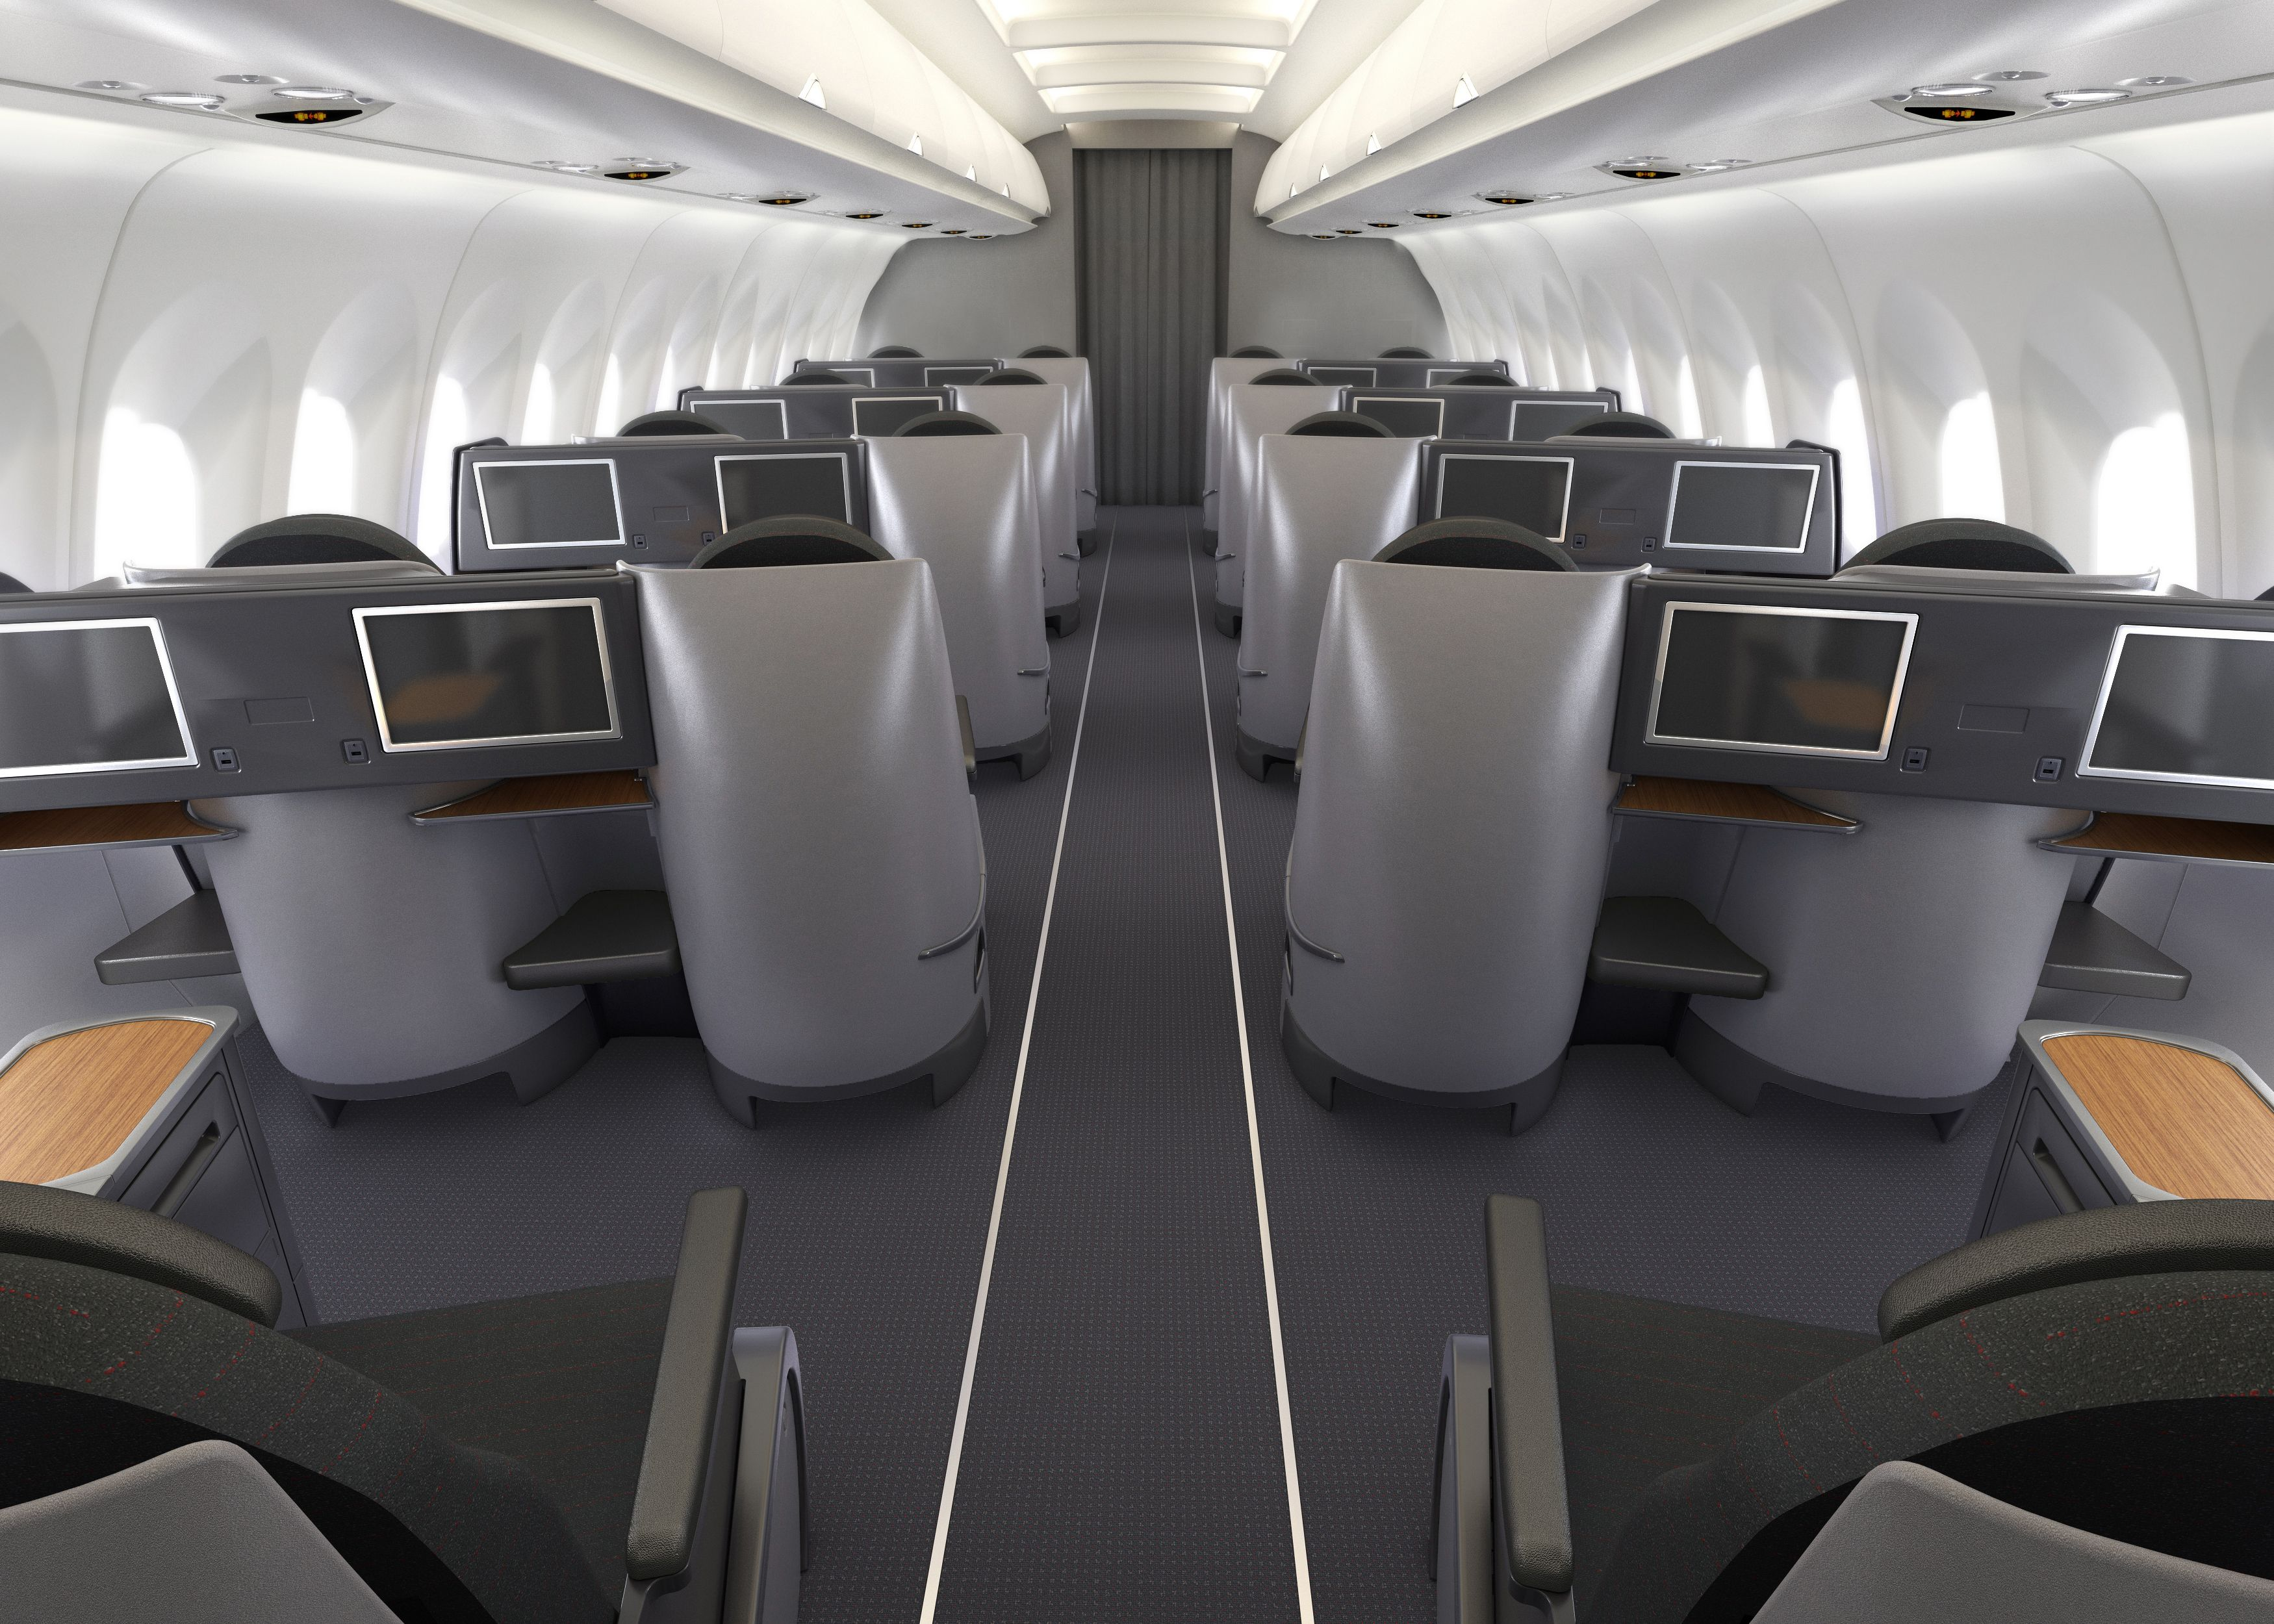 Our new A321T Business Class cabin features 20 fullylie